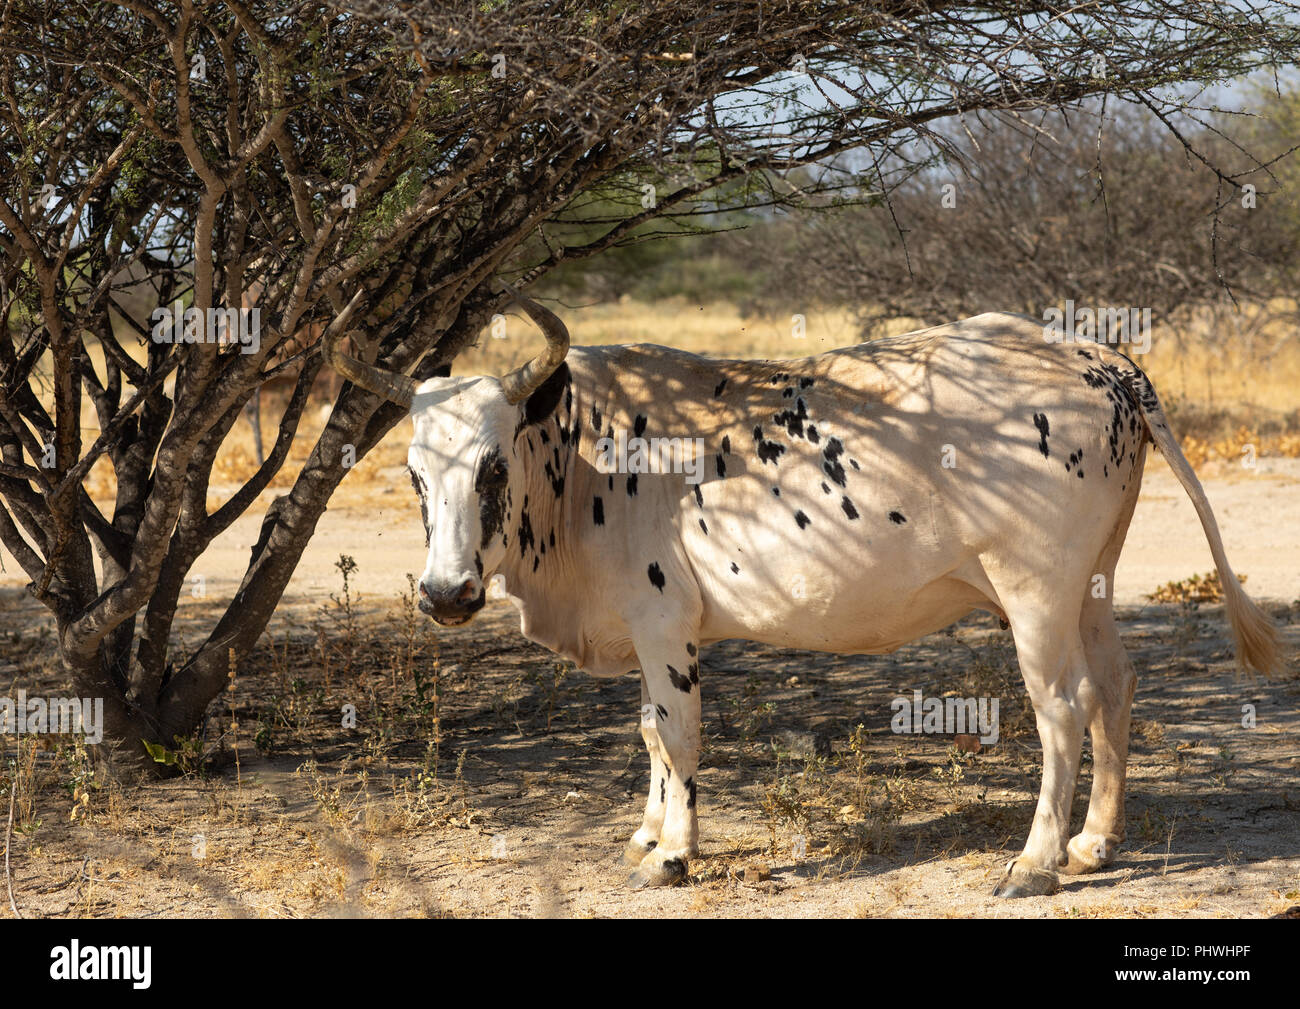 A cow walks in the bush, Namibe Province, Virei, Angola Stock Photo